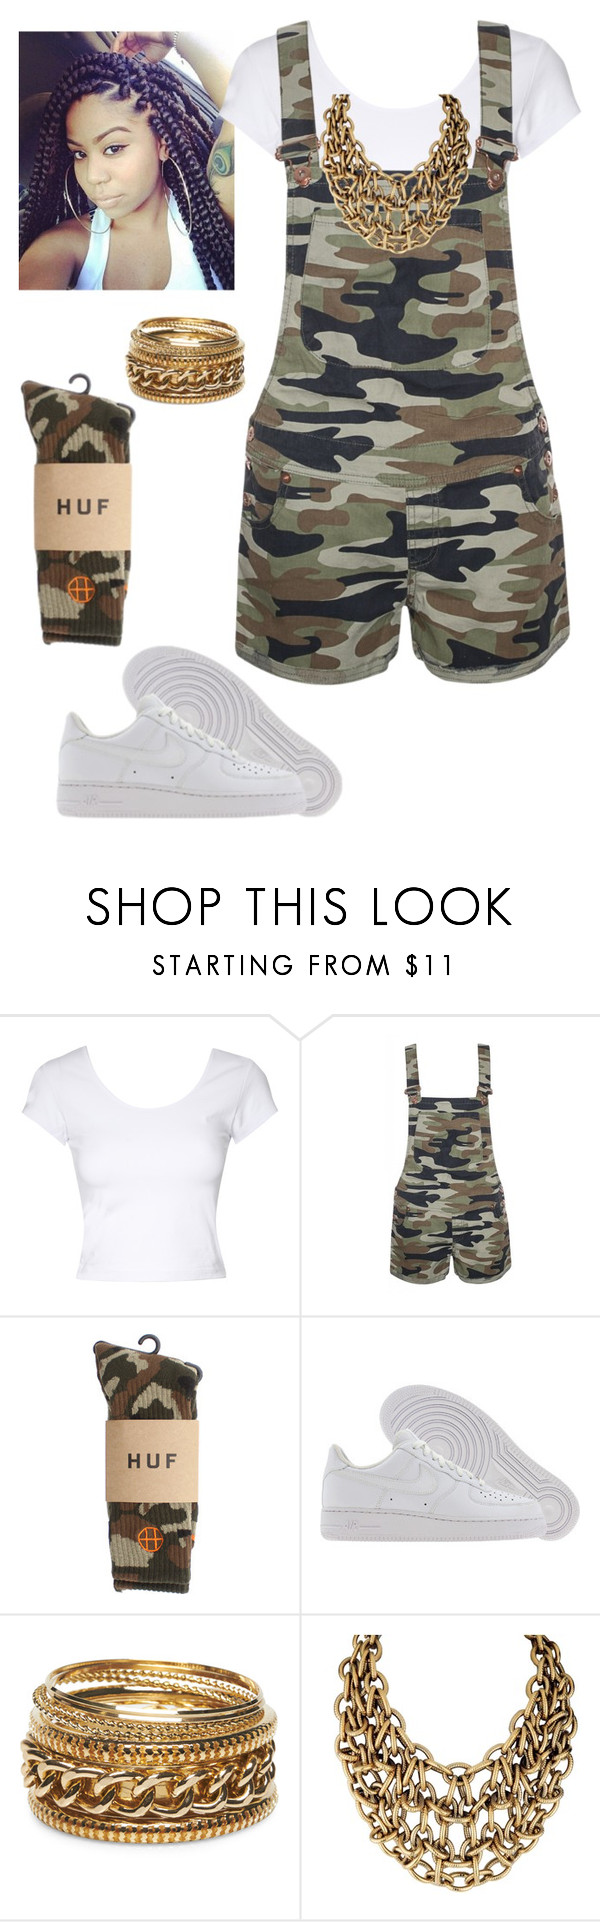 """""""Camo"""" by shamara97 ❤ liked on Polyvore featuring Jane Norman, HUF, NIKE, Wet Seal, women's clothing, women, female, woman, misses and juniors"""